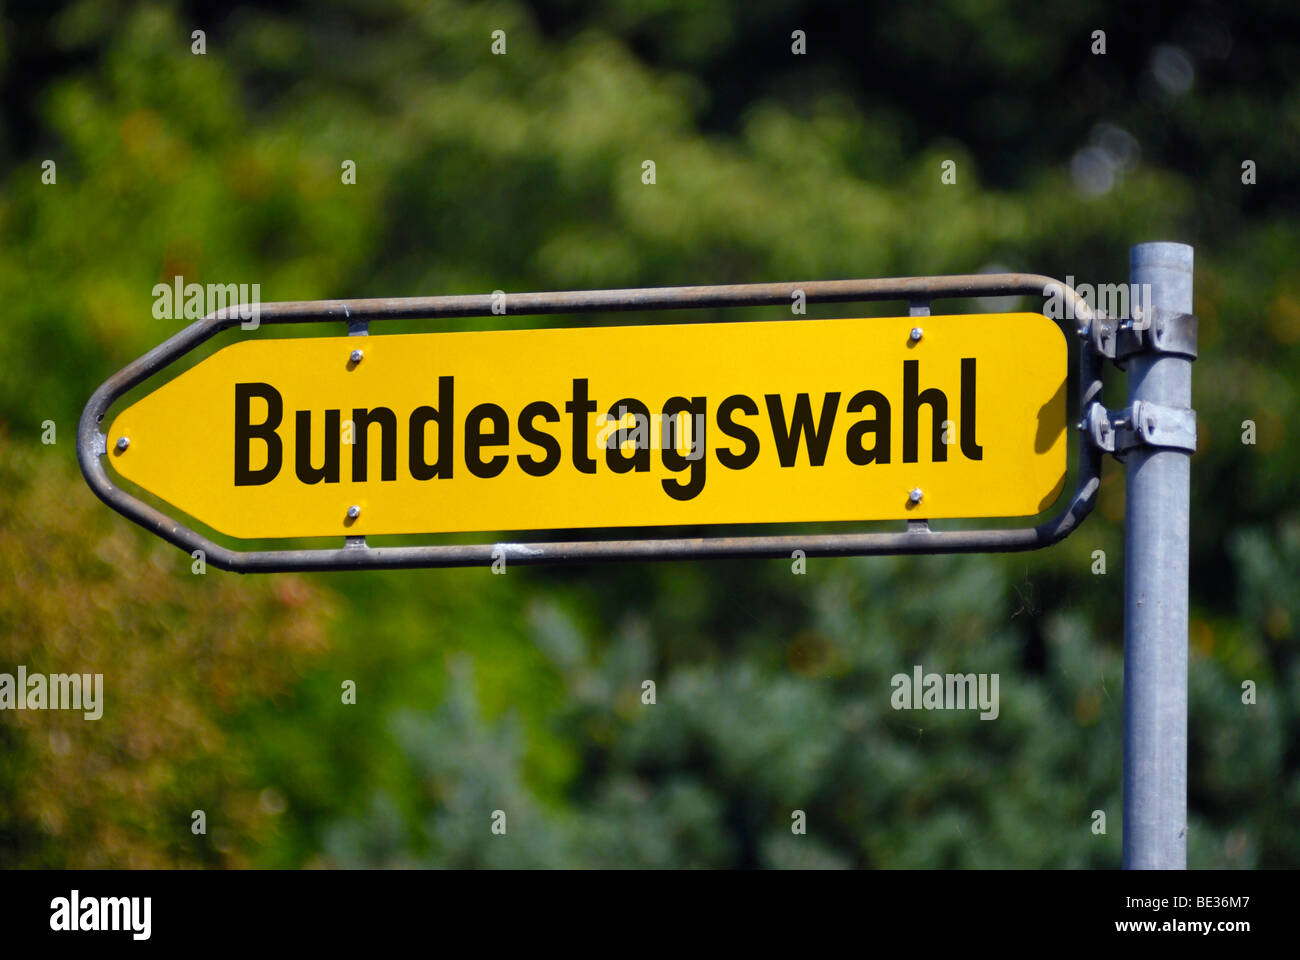 Sign post Bundestagswahl, elections to the Bundestag parliament, photo montage - Stock Image